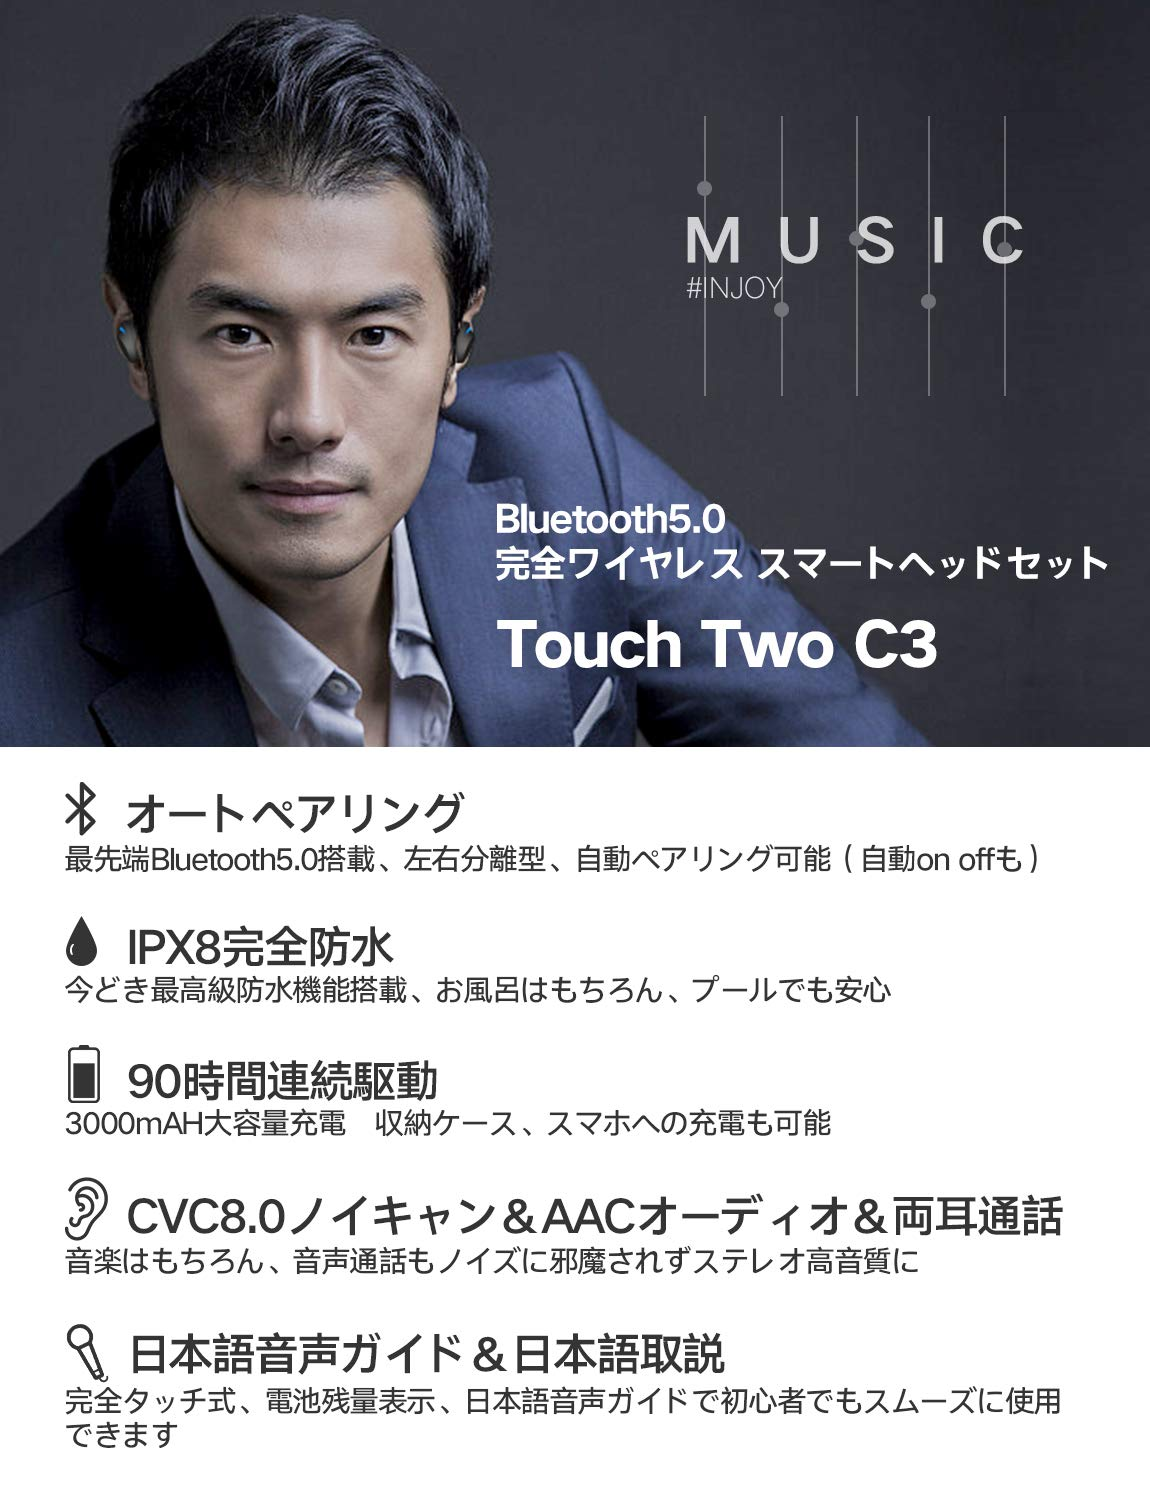 TouchTwo C3